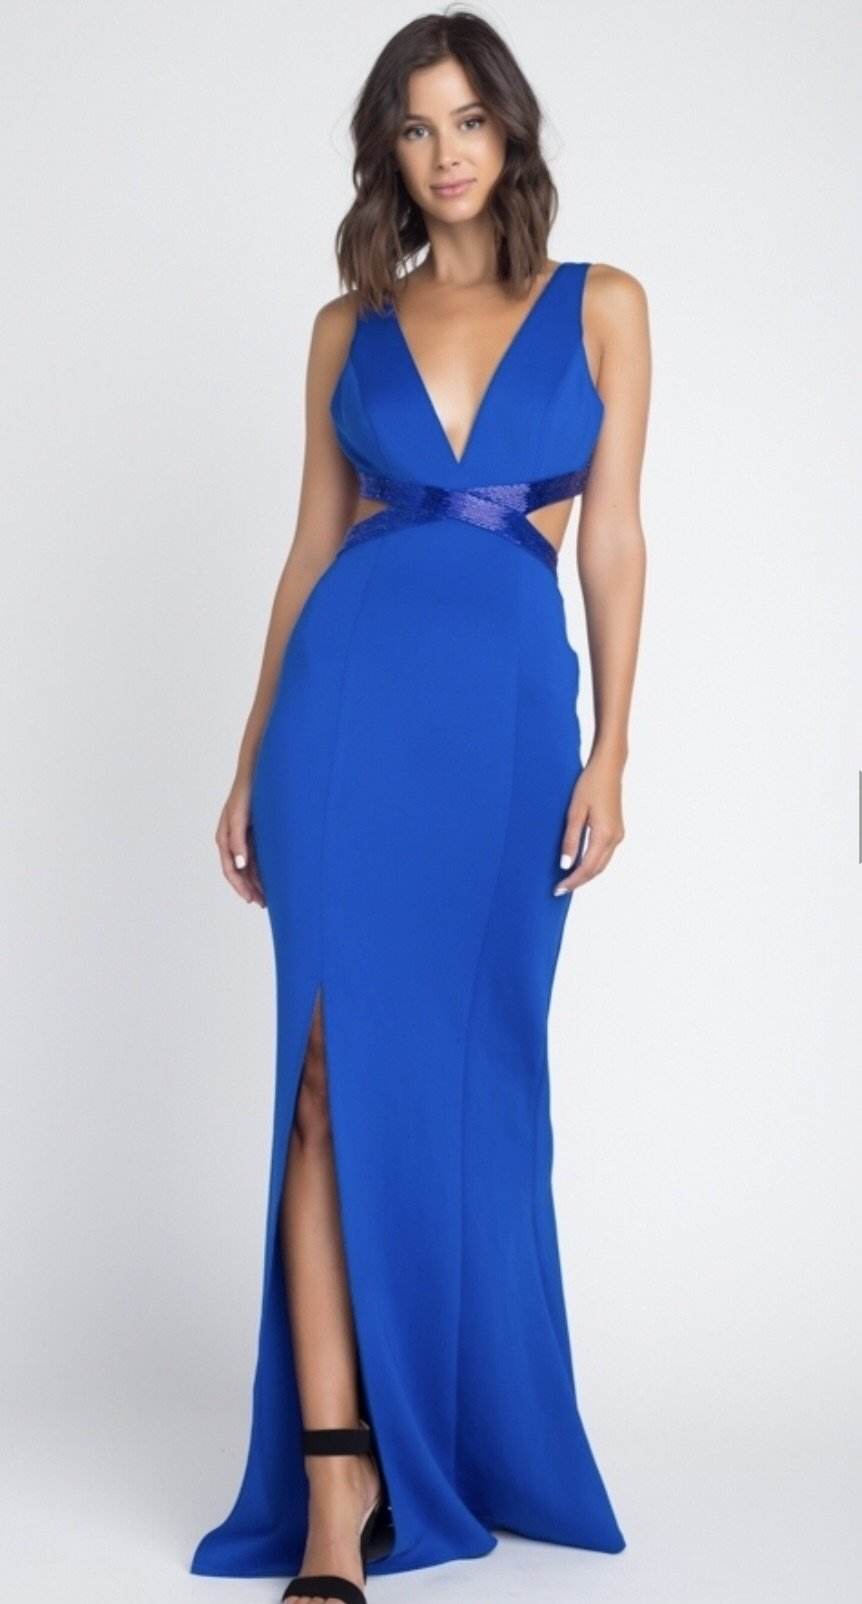 BEADED CUT OUT DRESS BEAD DETAIL IN ROYAL BLUE